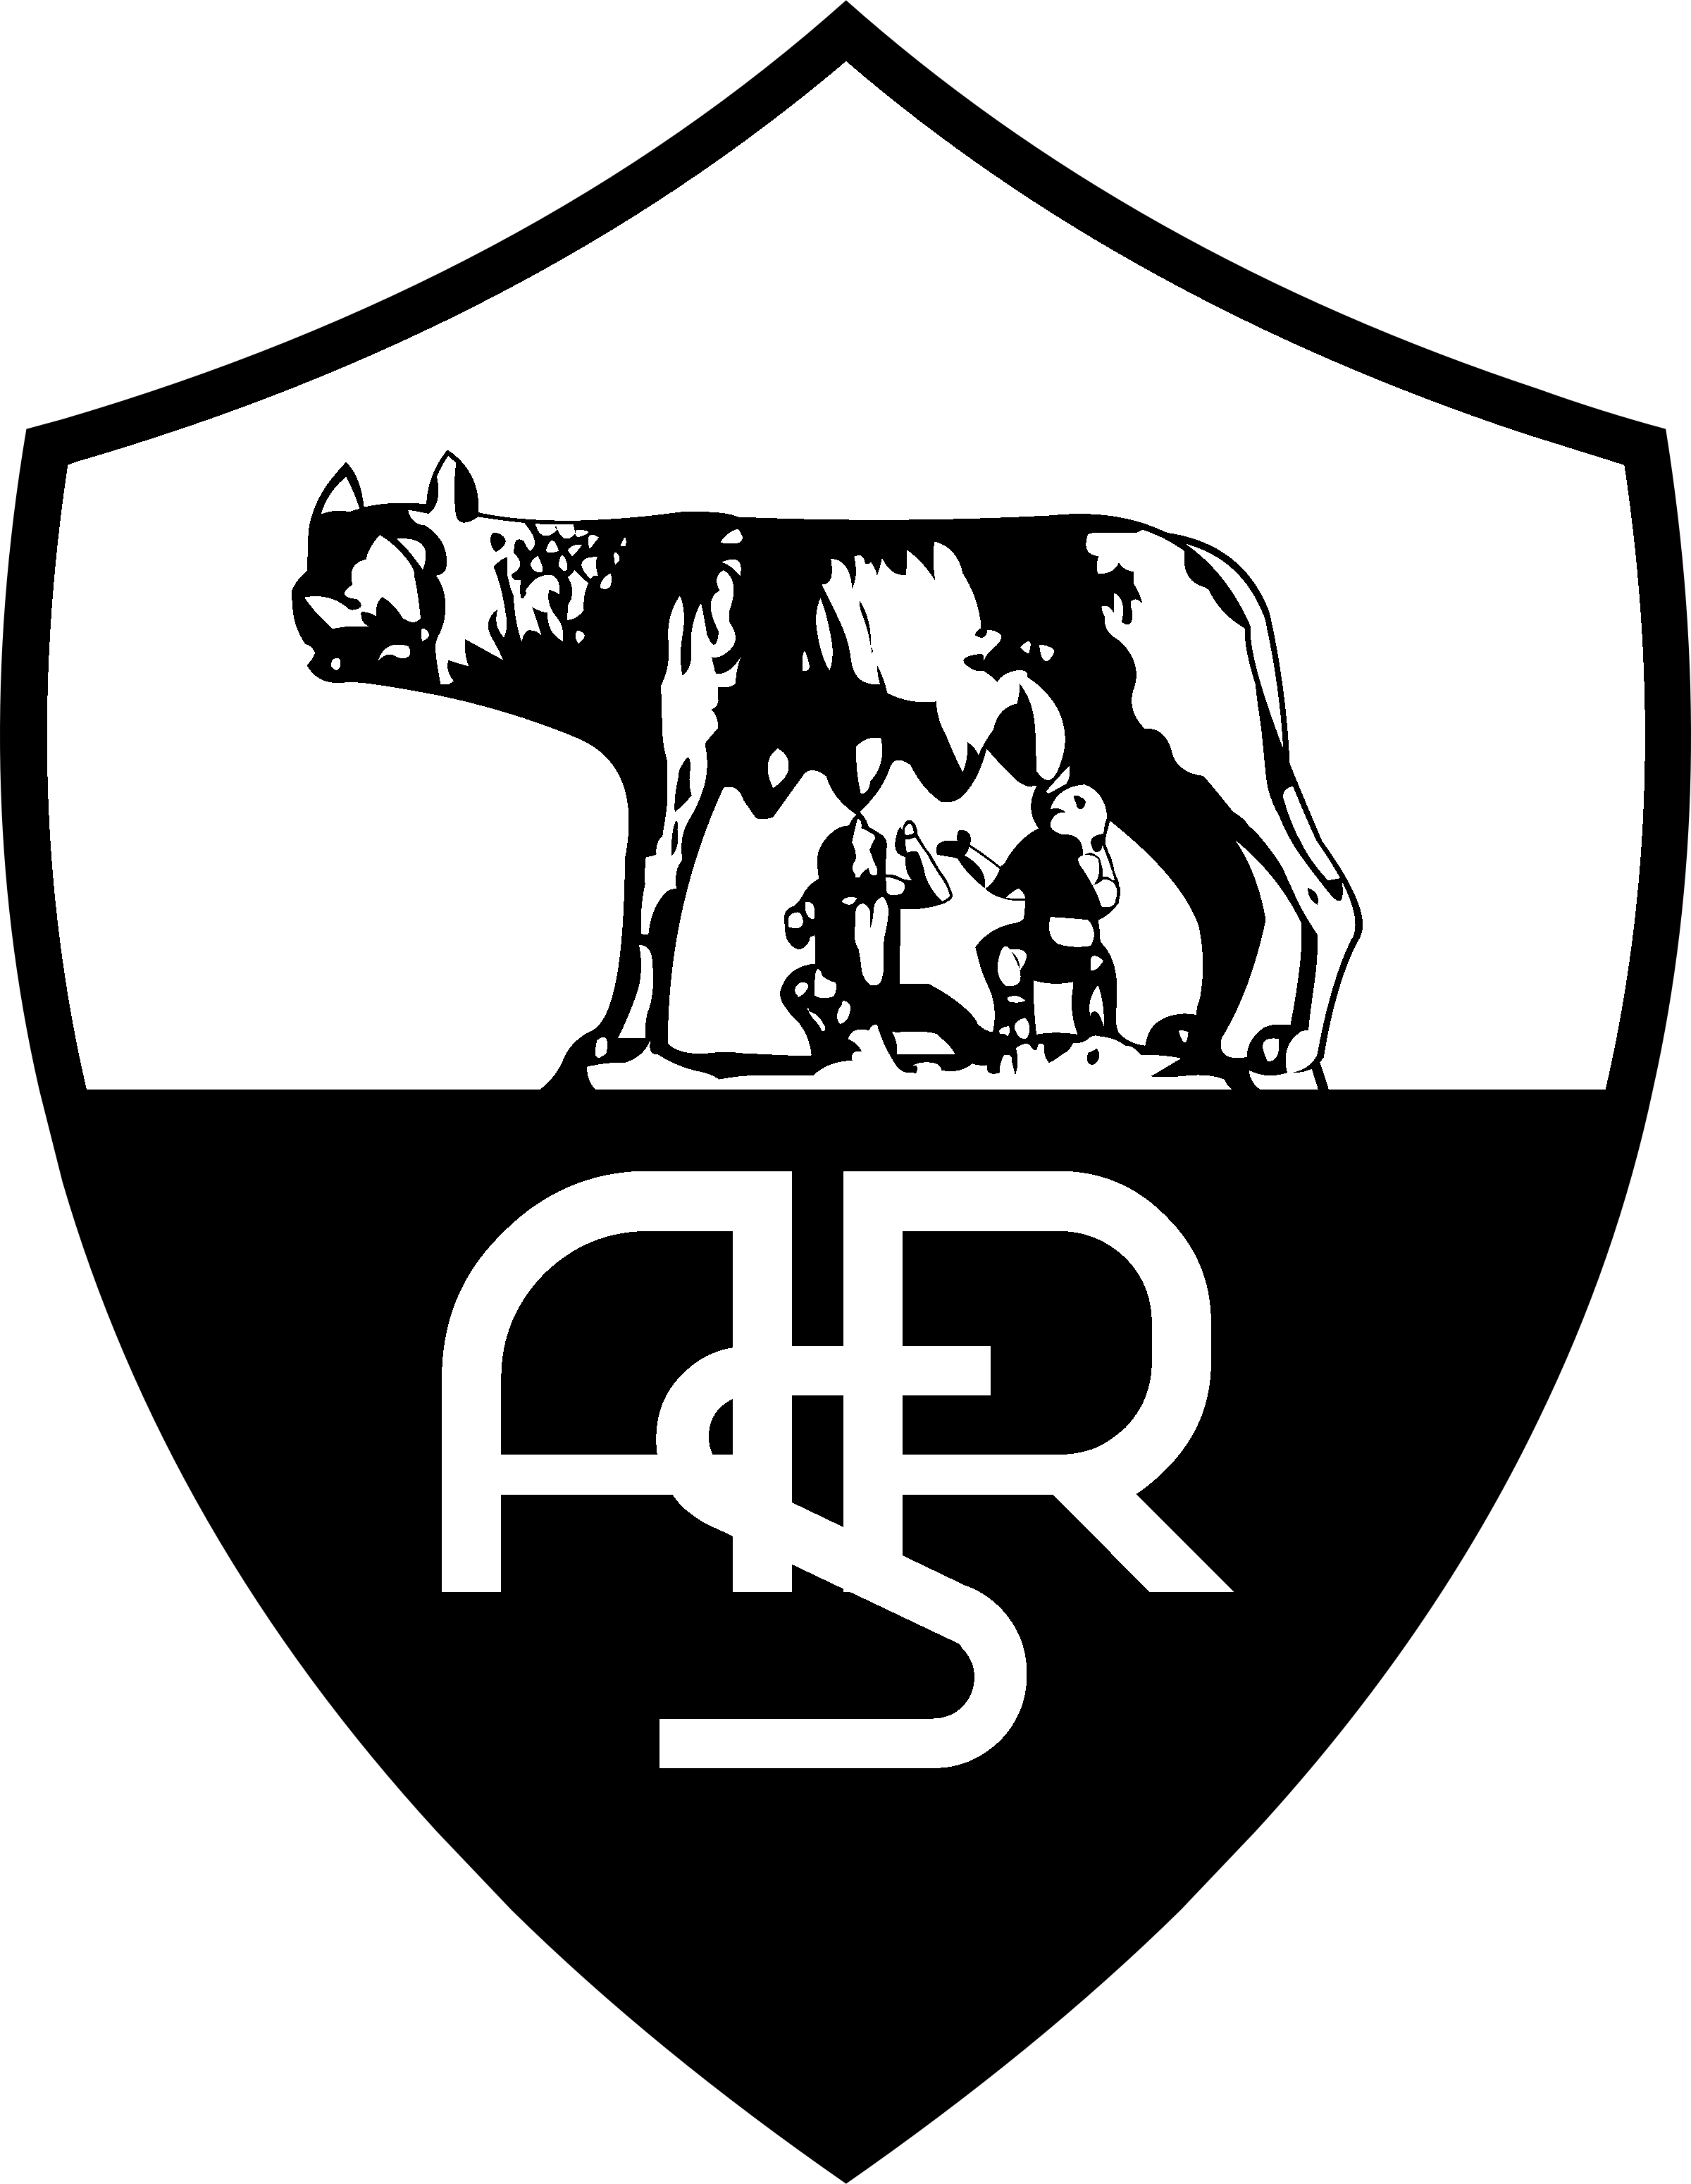 As Roma Logos Posted By Christopher Walker